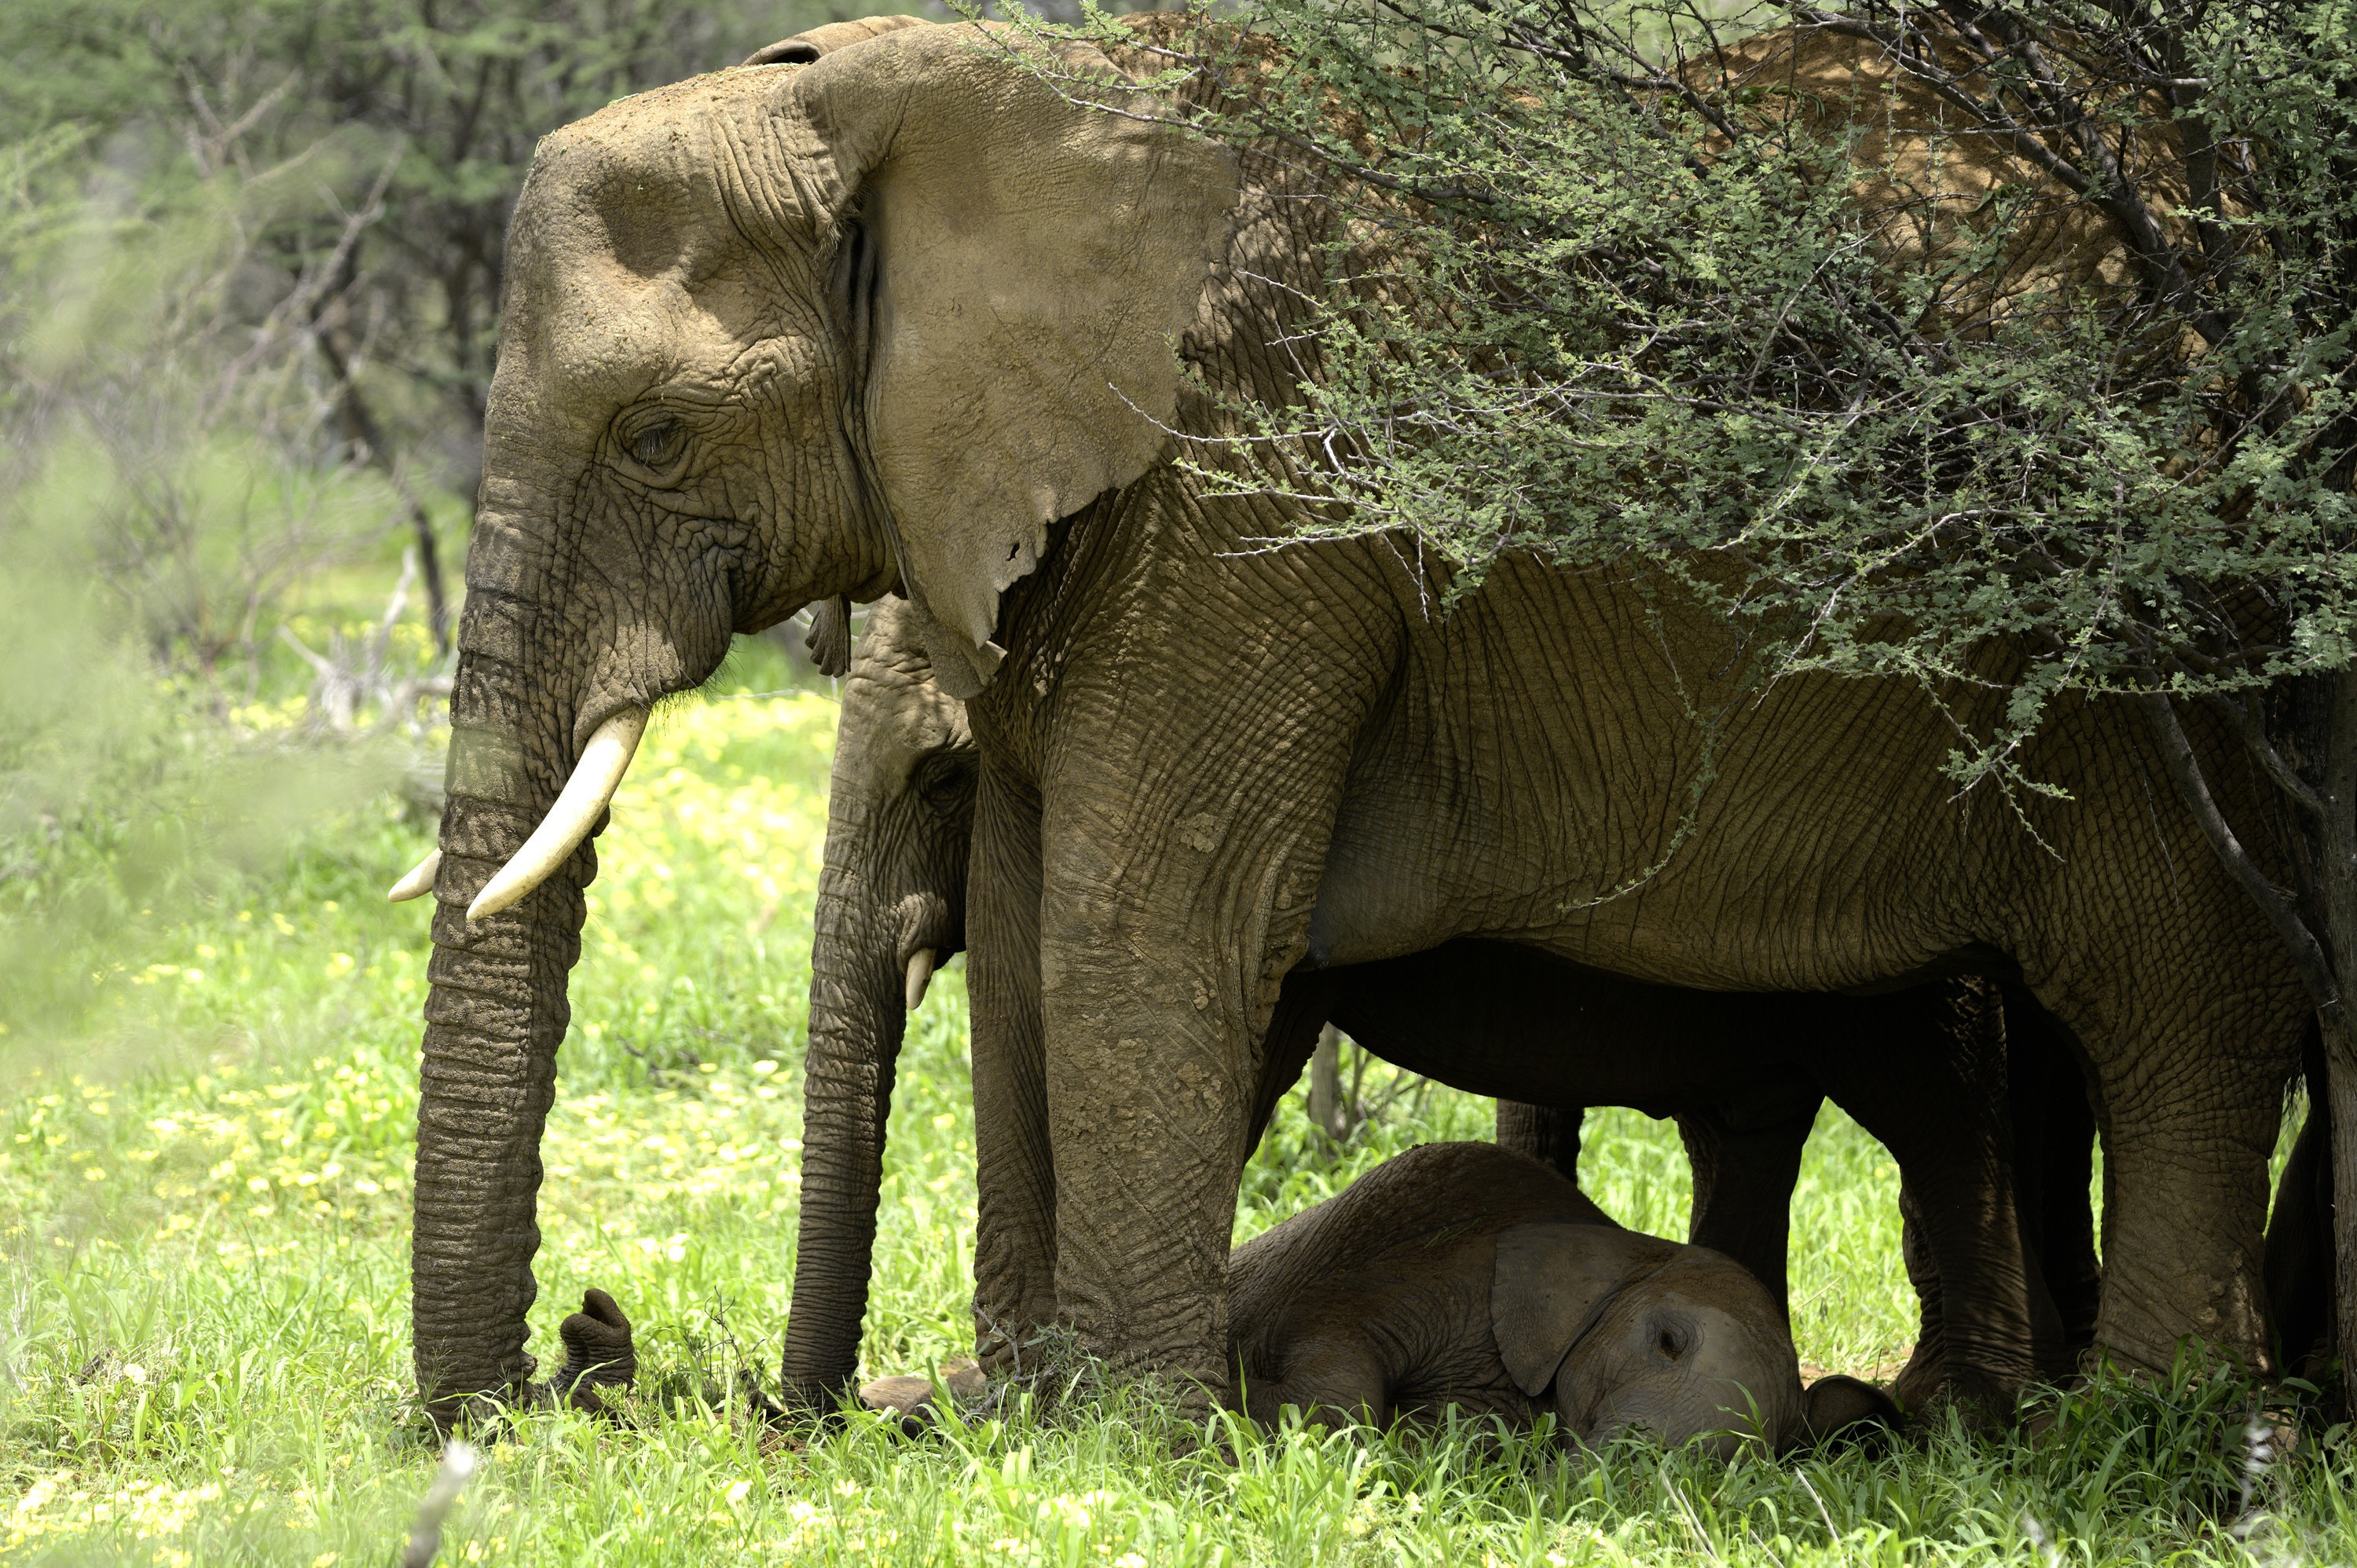 Max lying down underneath the adults.  Thandi stands in green grass with her trunk curled and pressed to the ground. (National Geographic for Disney+/Melanie Gerry)